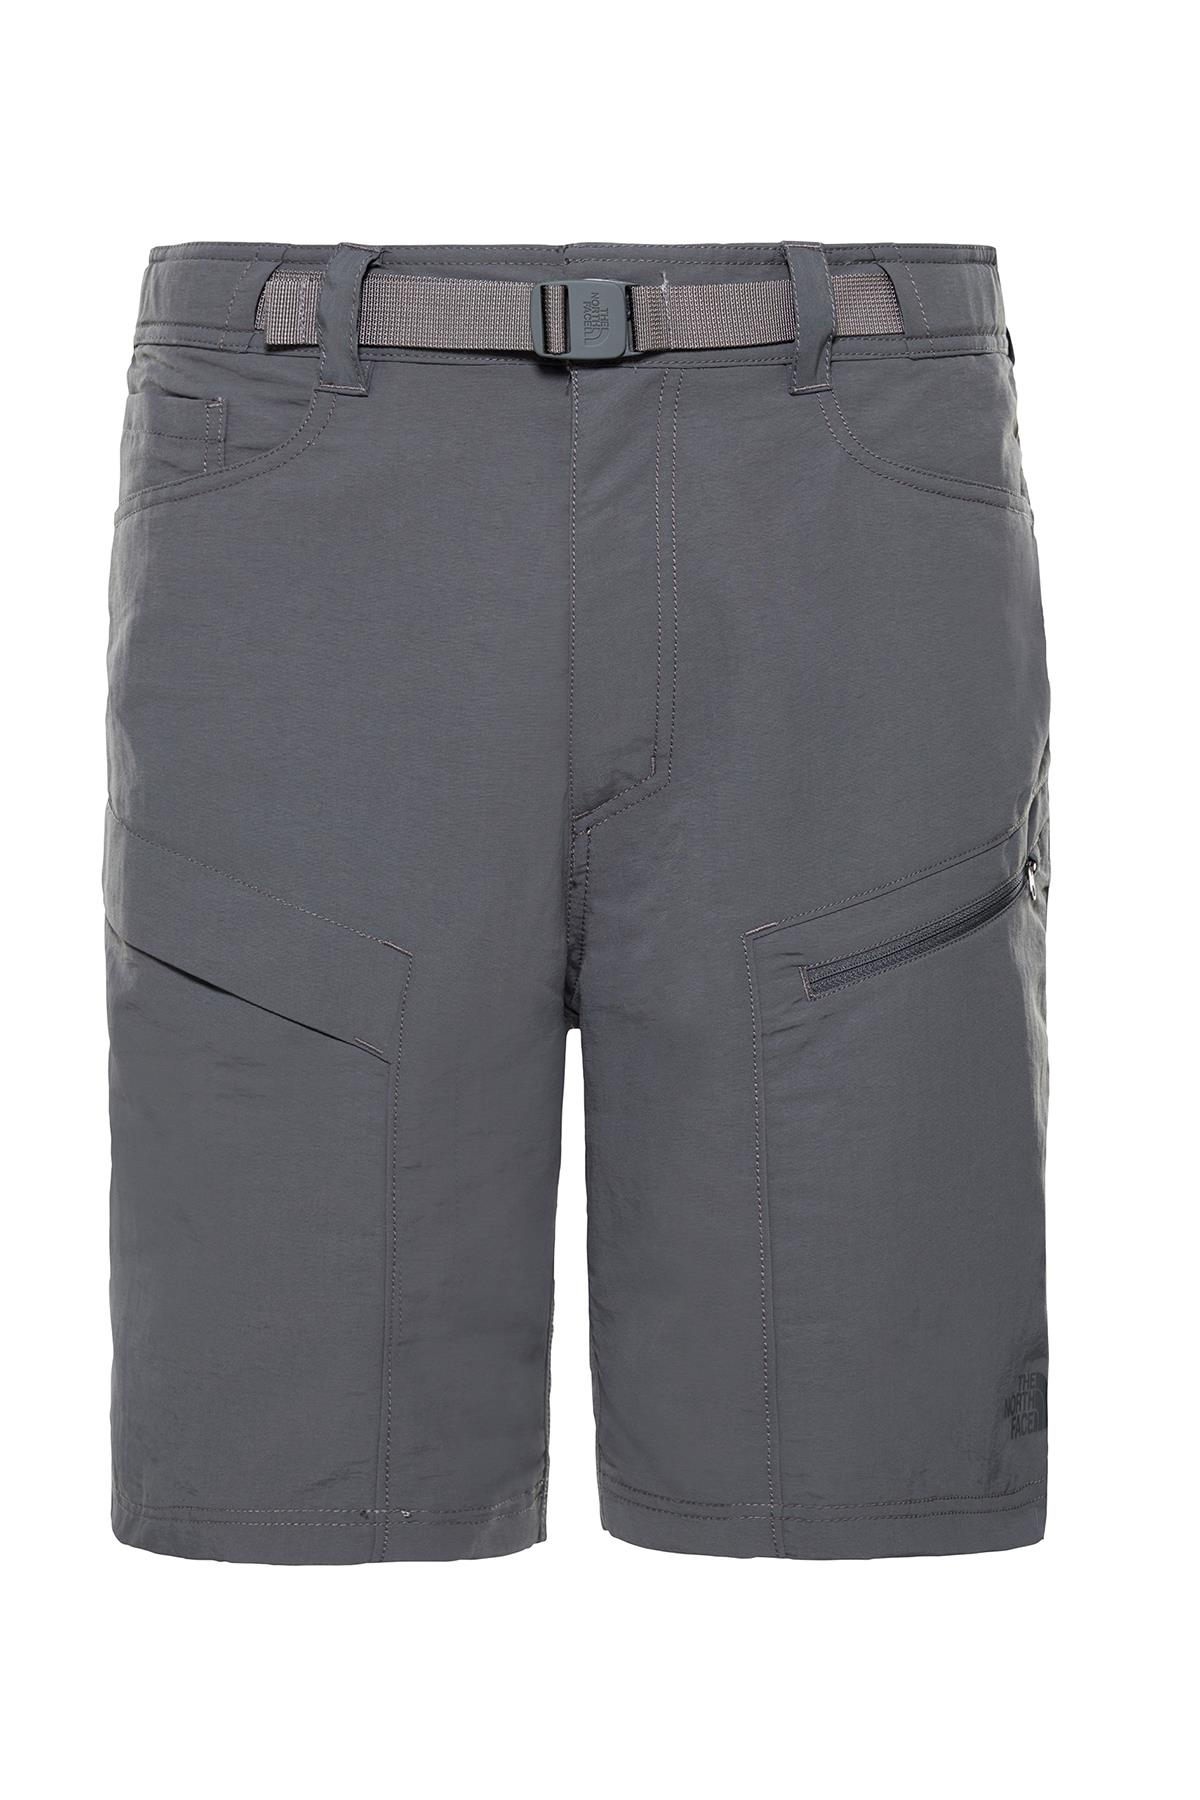 The Northface Erkek Paramount Trail Short T92Wl90C5 Şort